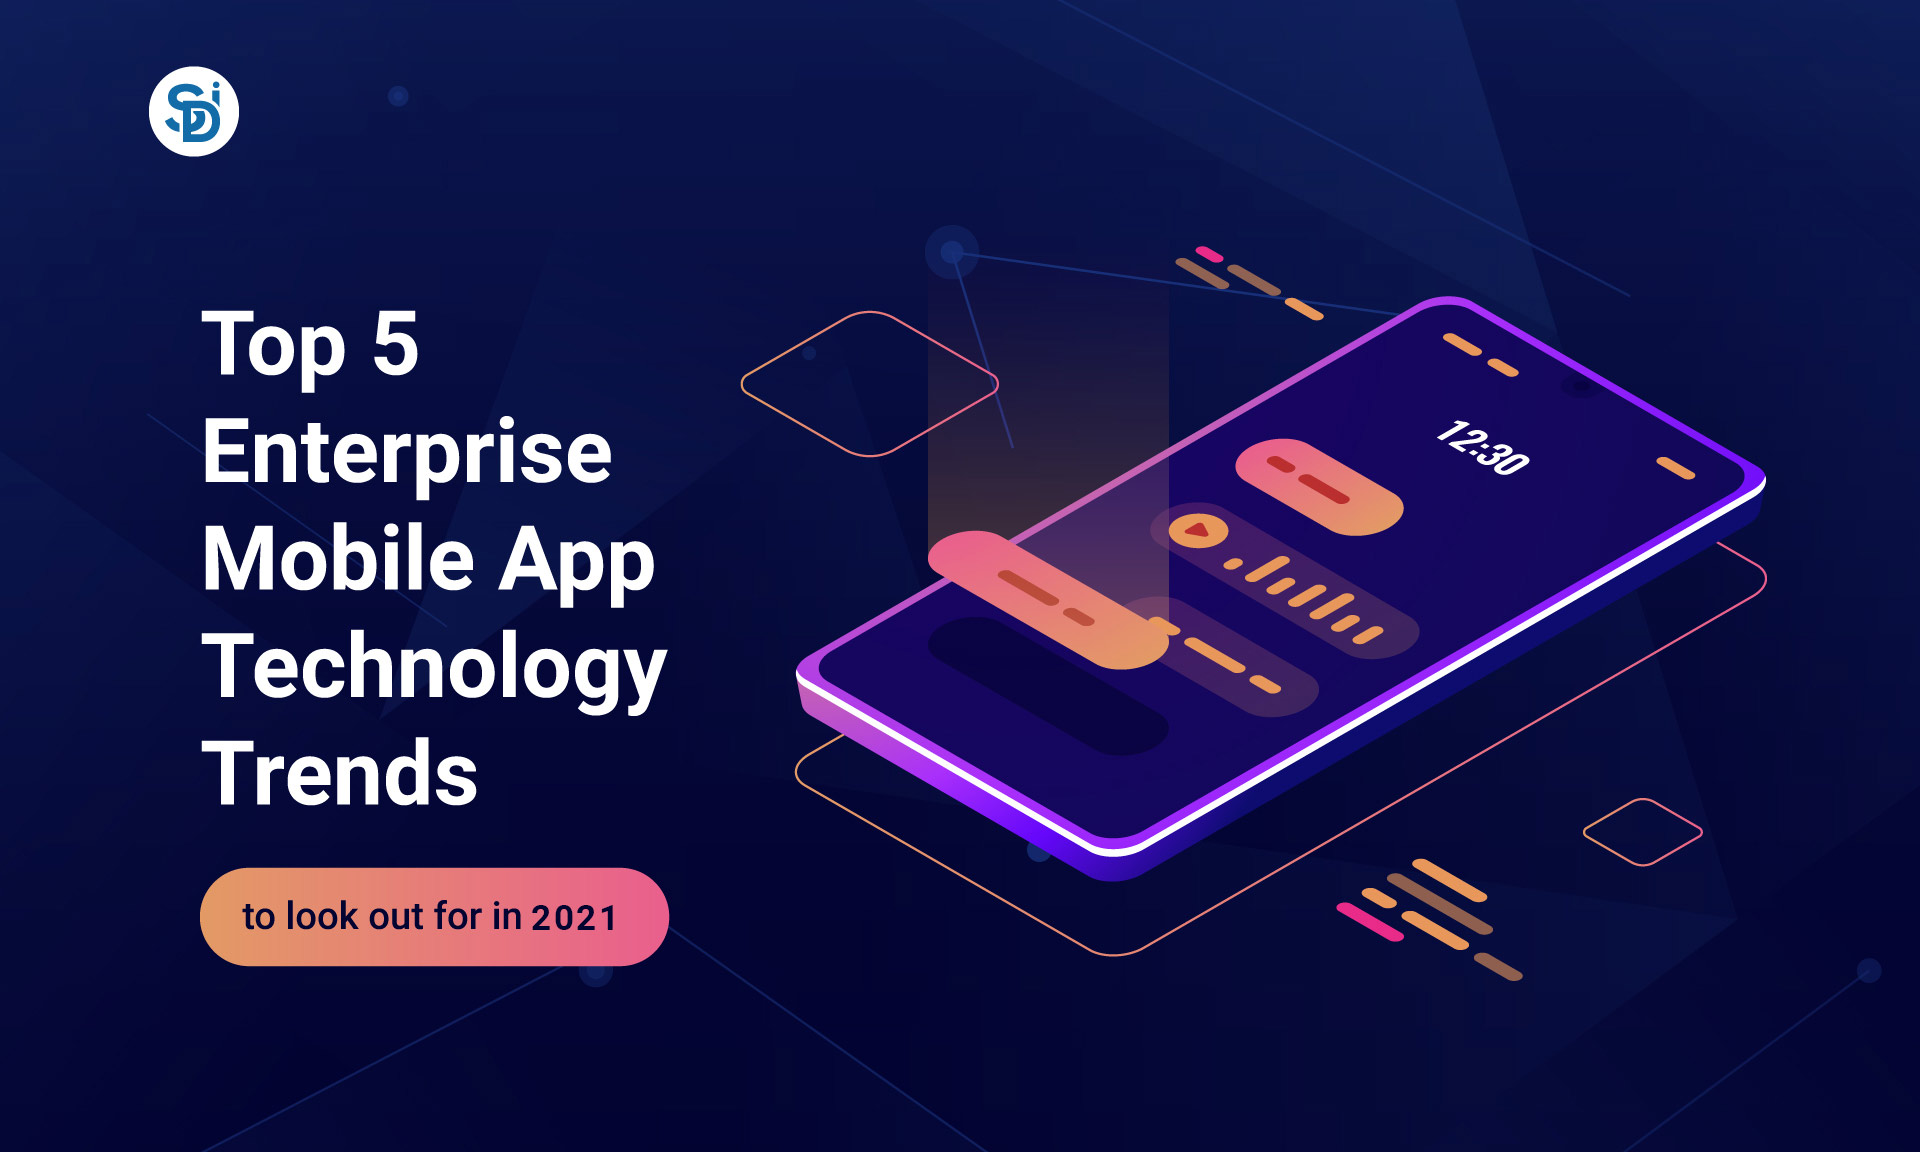 Top Enterprise Mobile App Trends